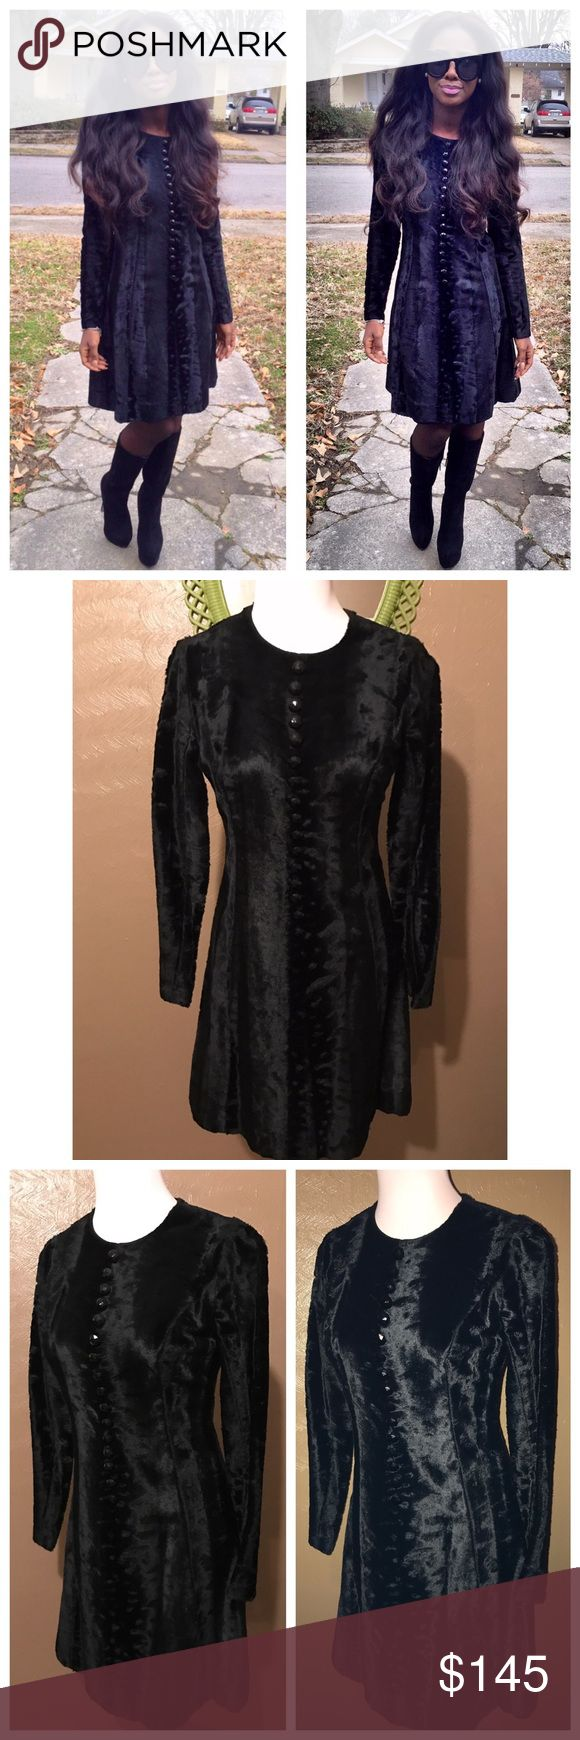 Saks Fifth Ave Vintage Fur Dress Very Beautiful, RARE Saks Fifth Ave. Vintage, All Black Fur Dress. Has black decorative buttons down the front. Originally purchased for $290, I have gained much weight and can no longer fit it. Tag reads 5, but fits like an XS!                                                         **Measurements taken laying flat.** Length, Top of shoulder to hem: 35.5 in., Waist: 15.5 in., Bust: almost 17 in. (Dry clean only) Awesome condition!! Ask questions! Saks Fifth…